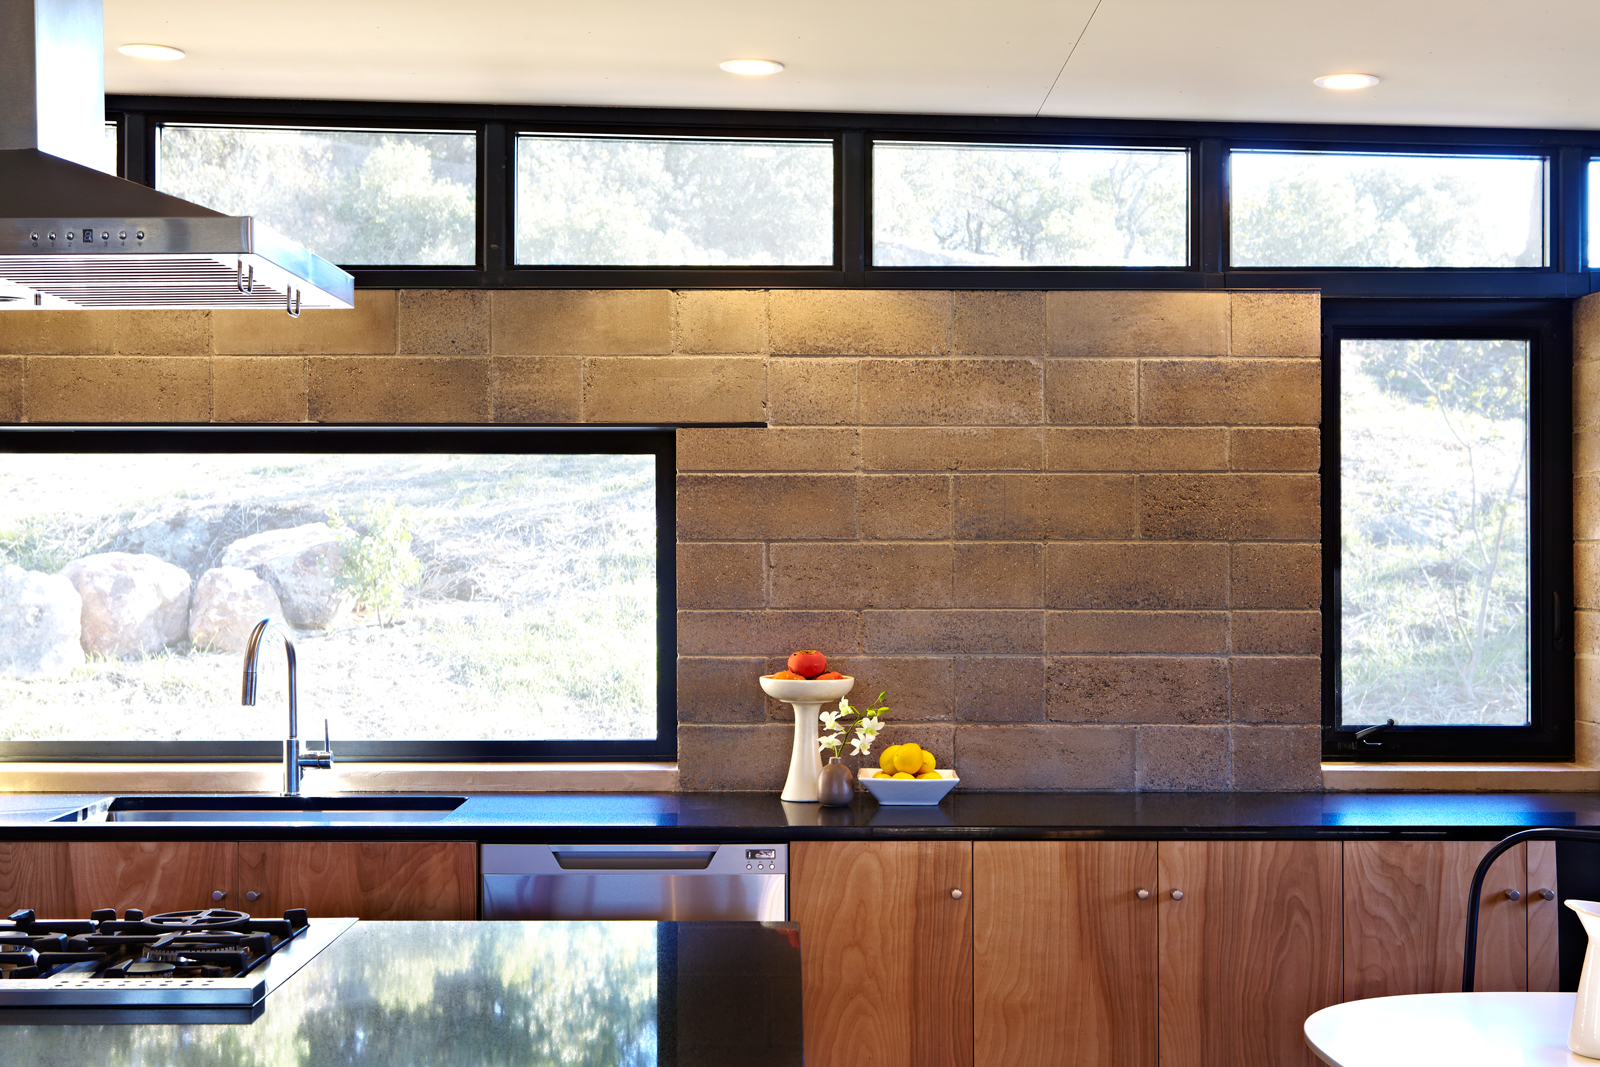 Bronze anodized window frames, black Cesarstone contertops, natural birch cabinets and Watershed Blocks. Lighted from above as they are here, the color variations in each individual block reveal the minerality of their composition. Find out more at the   Watershed Materials  website.